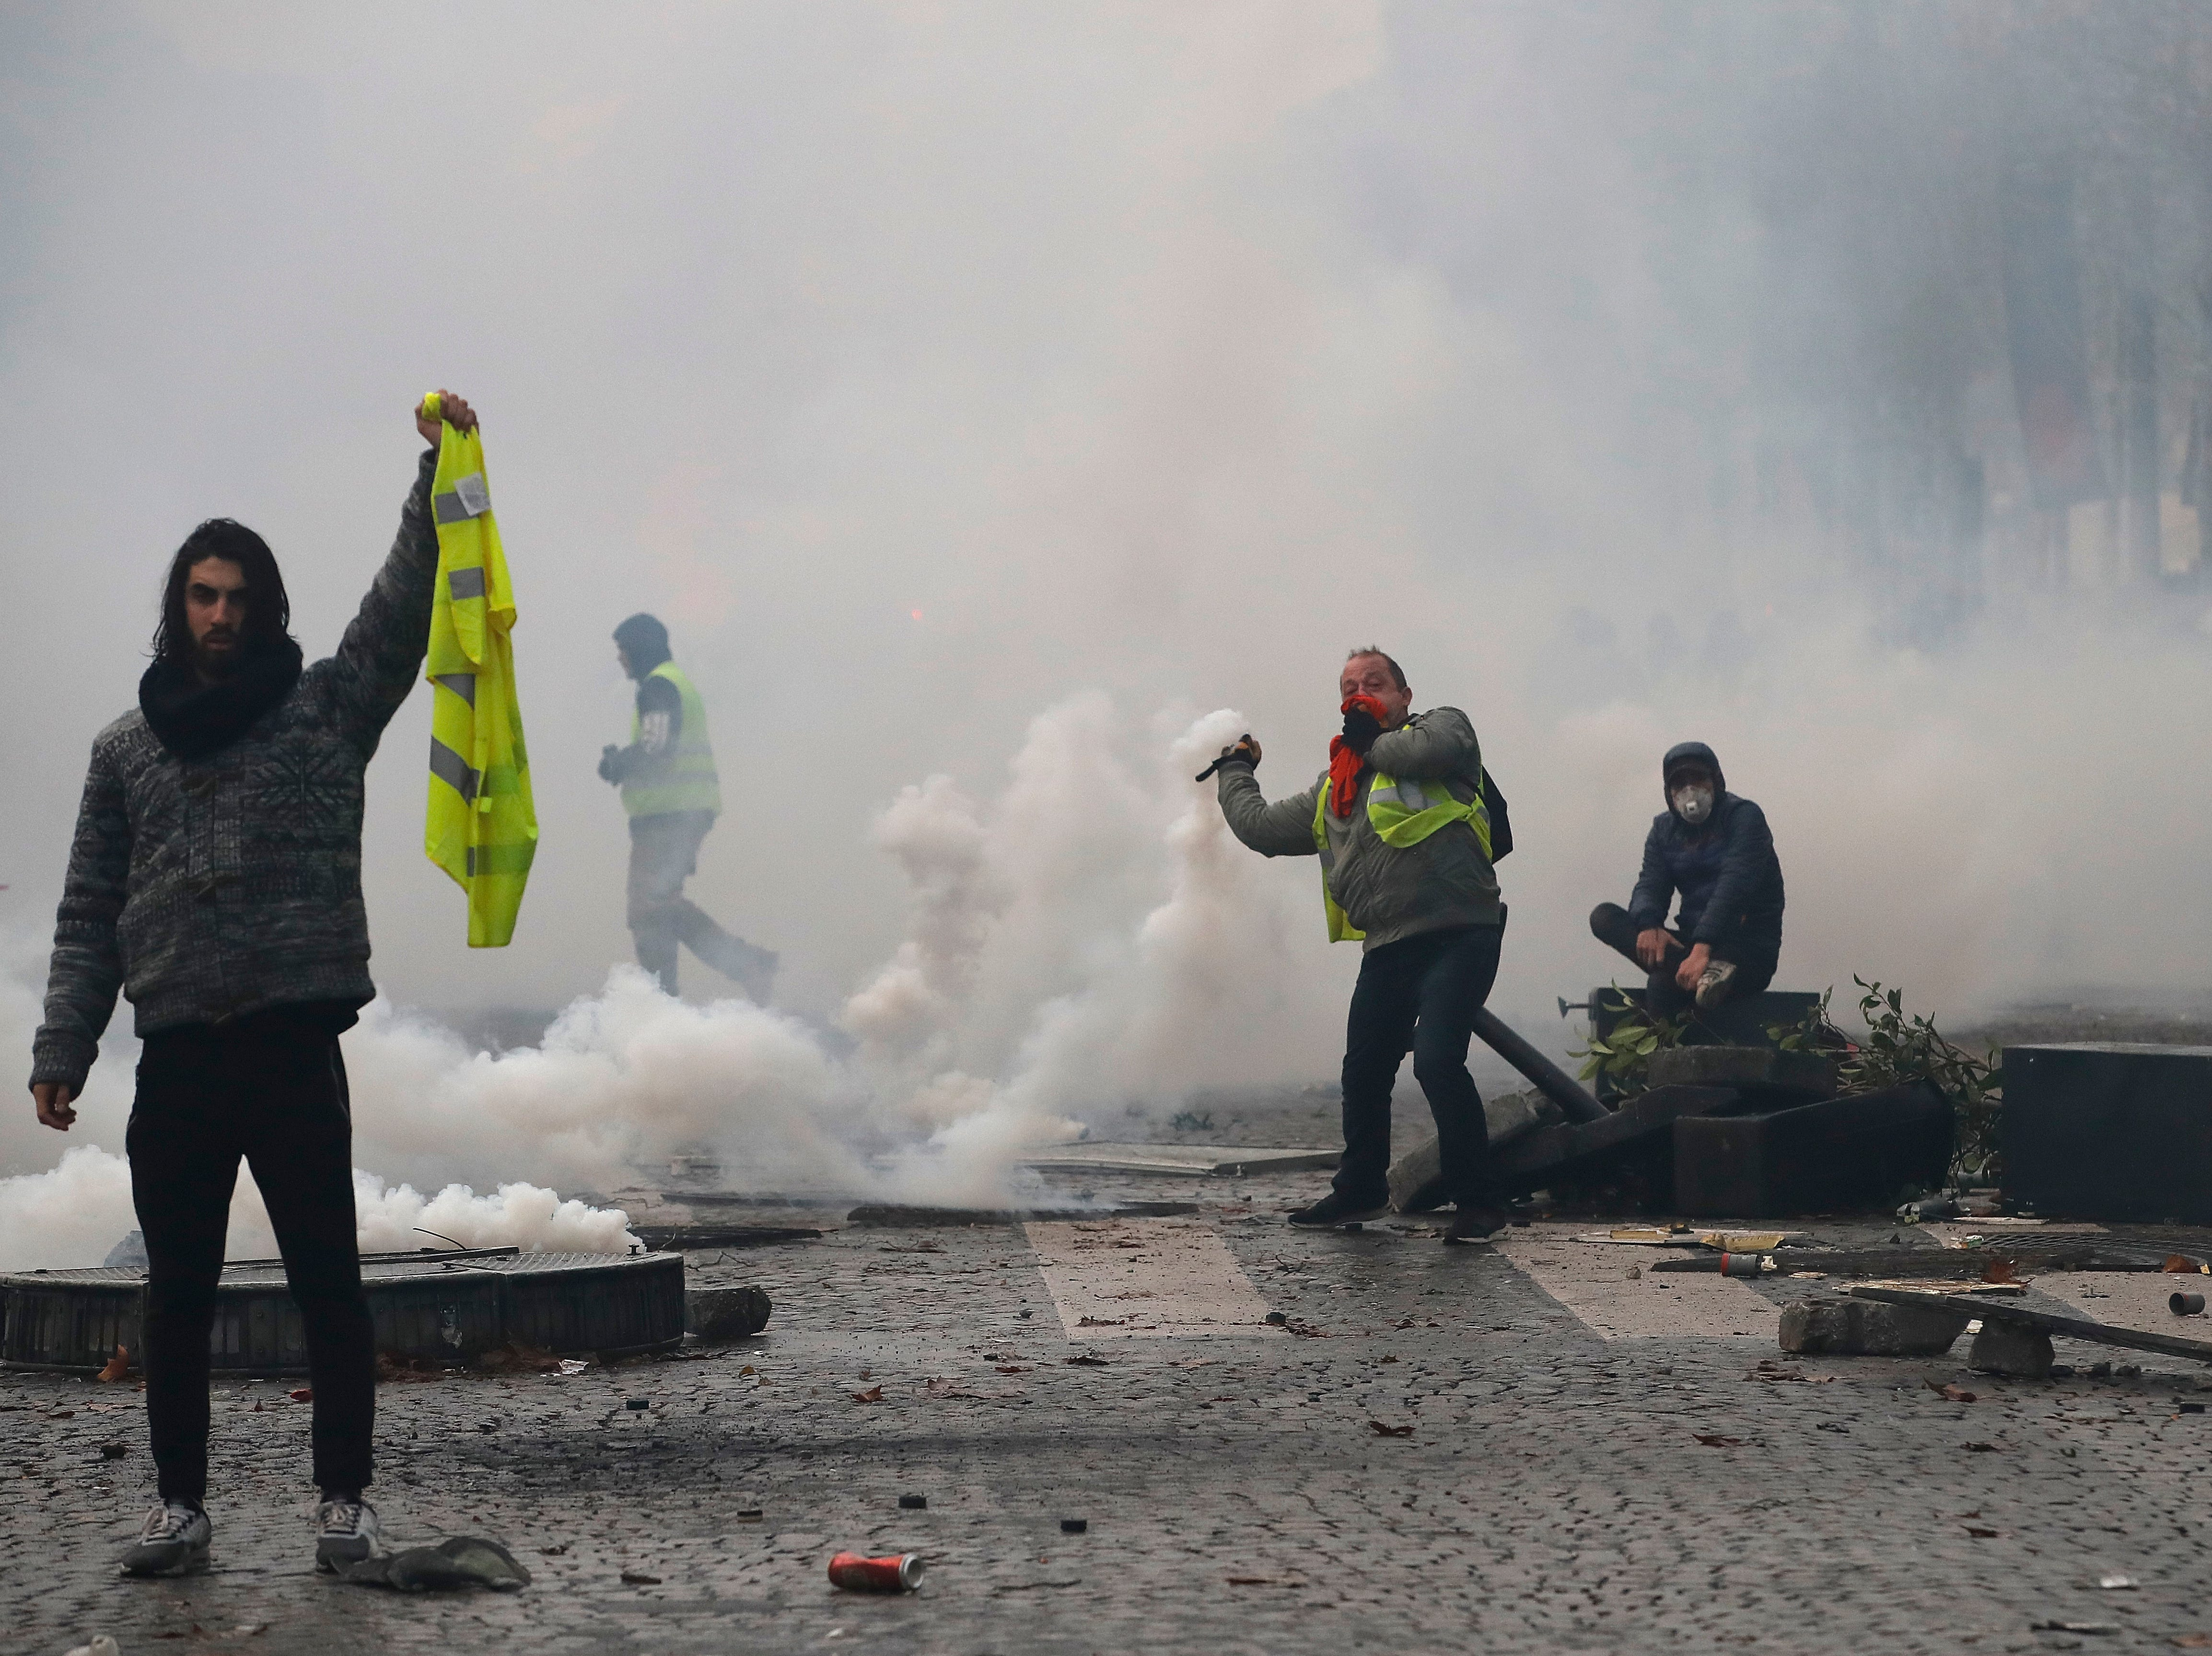 A demonstrator shows his yellow jacket while another one throws a gas canister during a protest against the rising of the fuel taxes, on the Champs-Elysees avenue, Saturday, Nov. 24, 2018 in Paris.